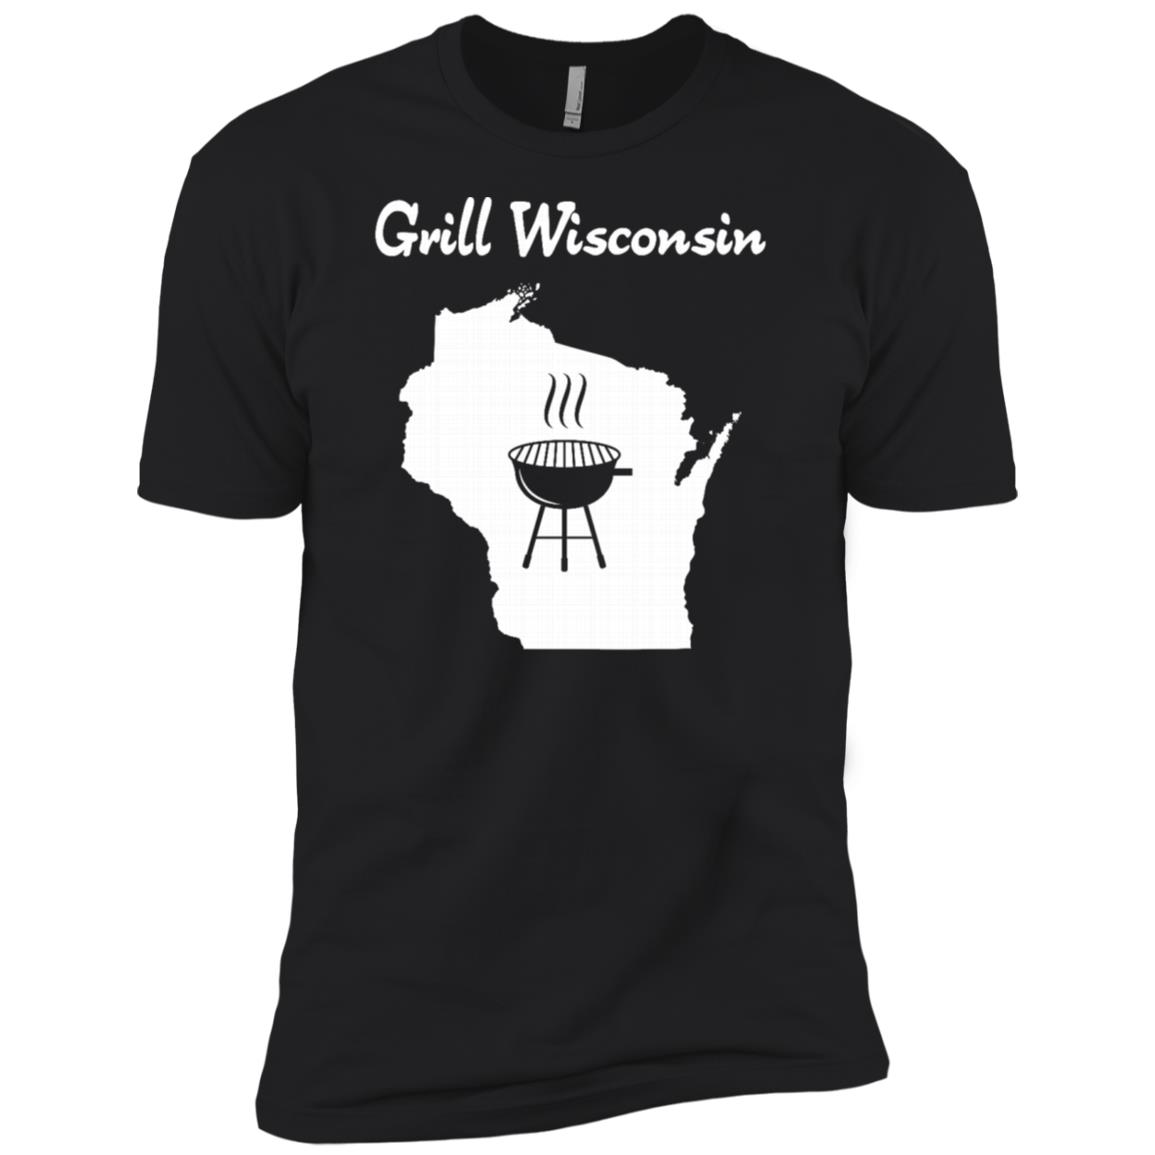 Grill Wisconsin awesome sconnie beer brat grilling Men Short Sleeve T-Shirt